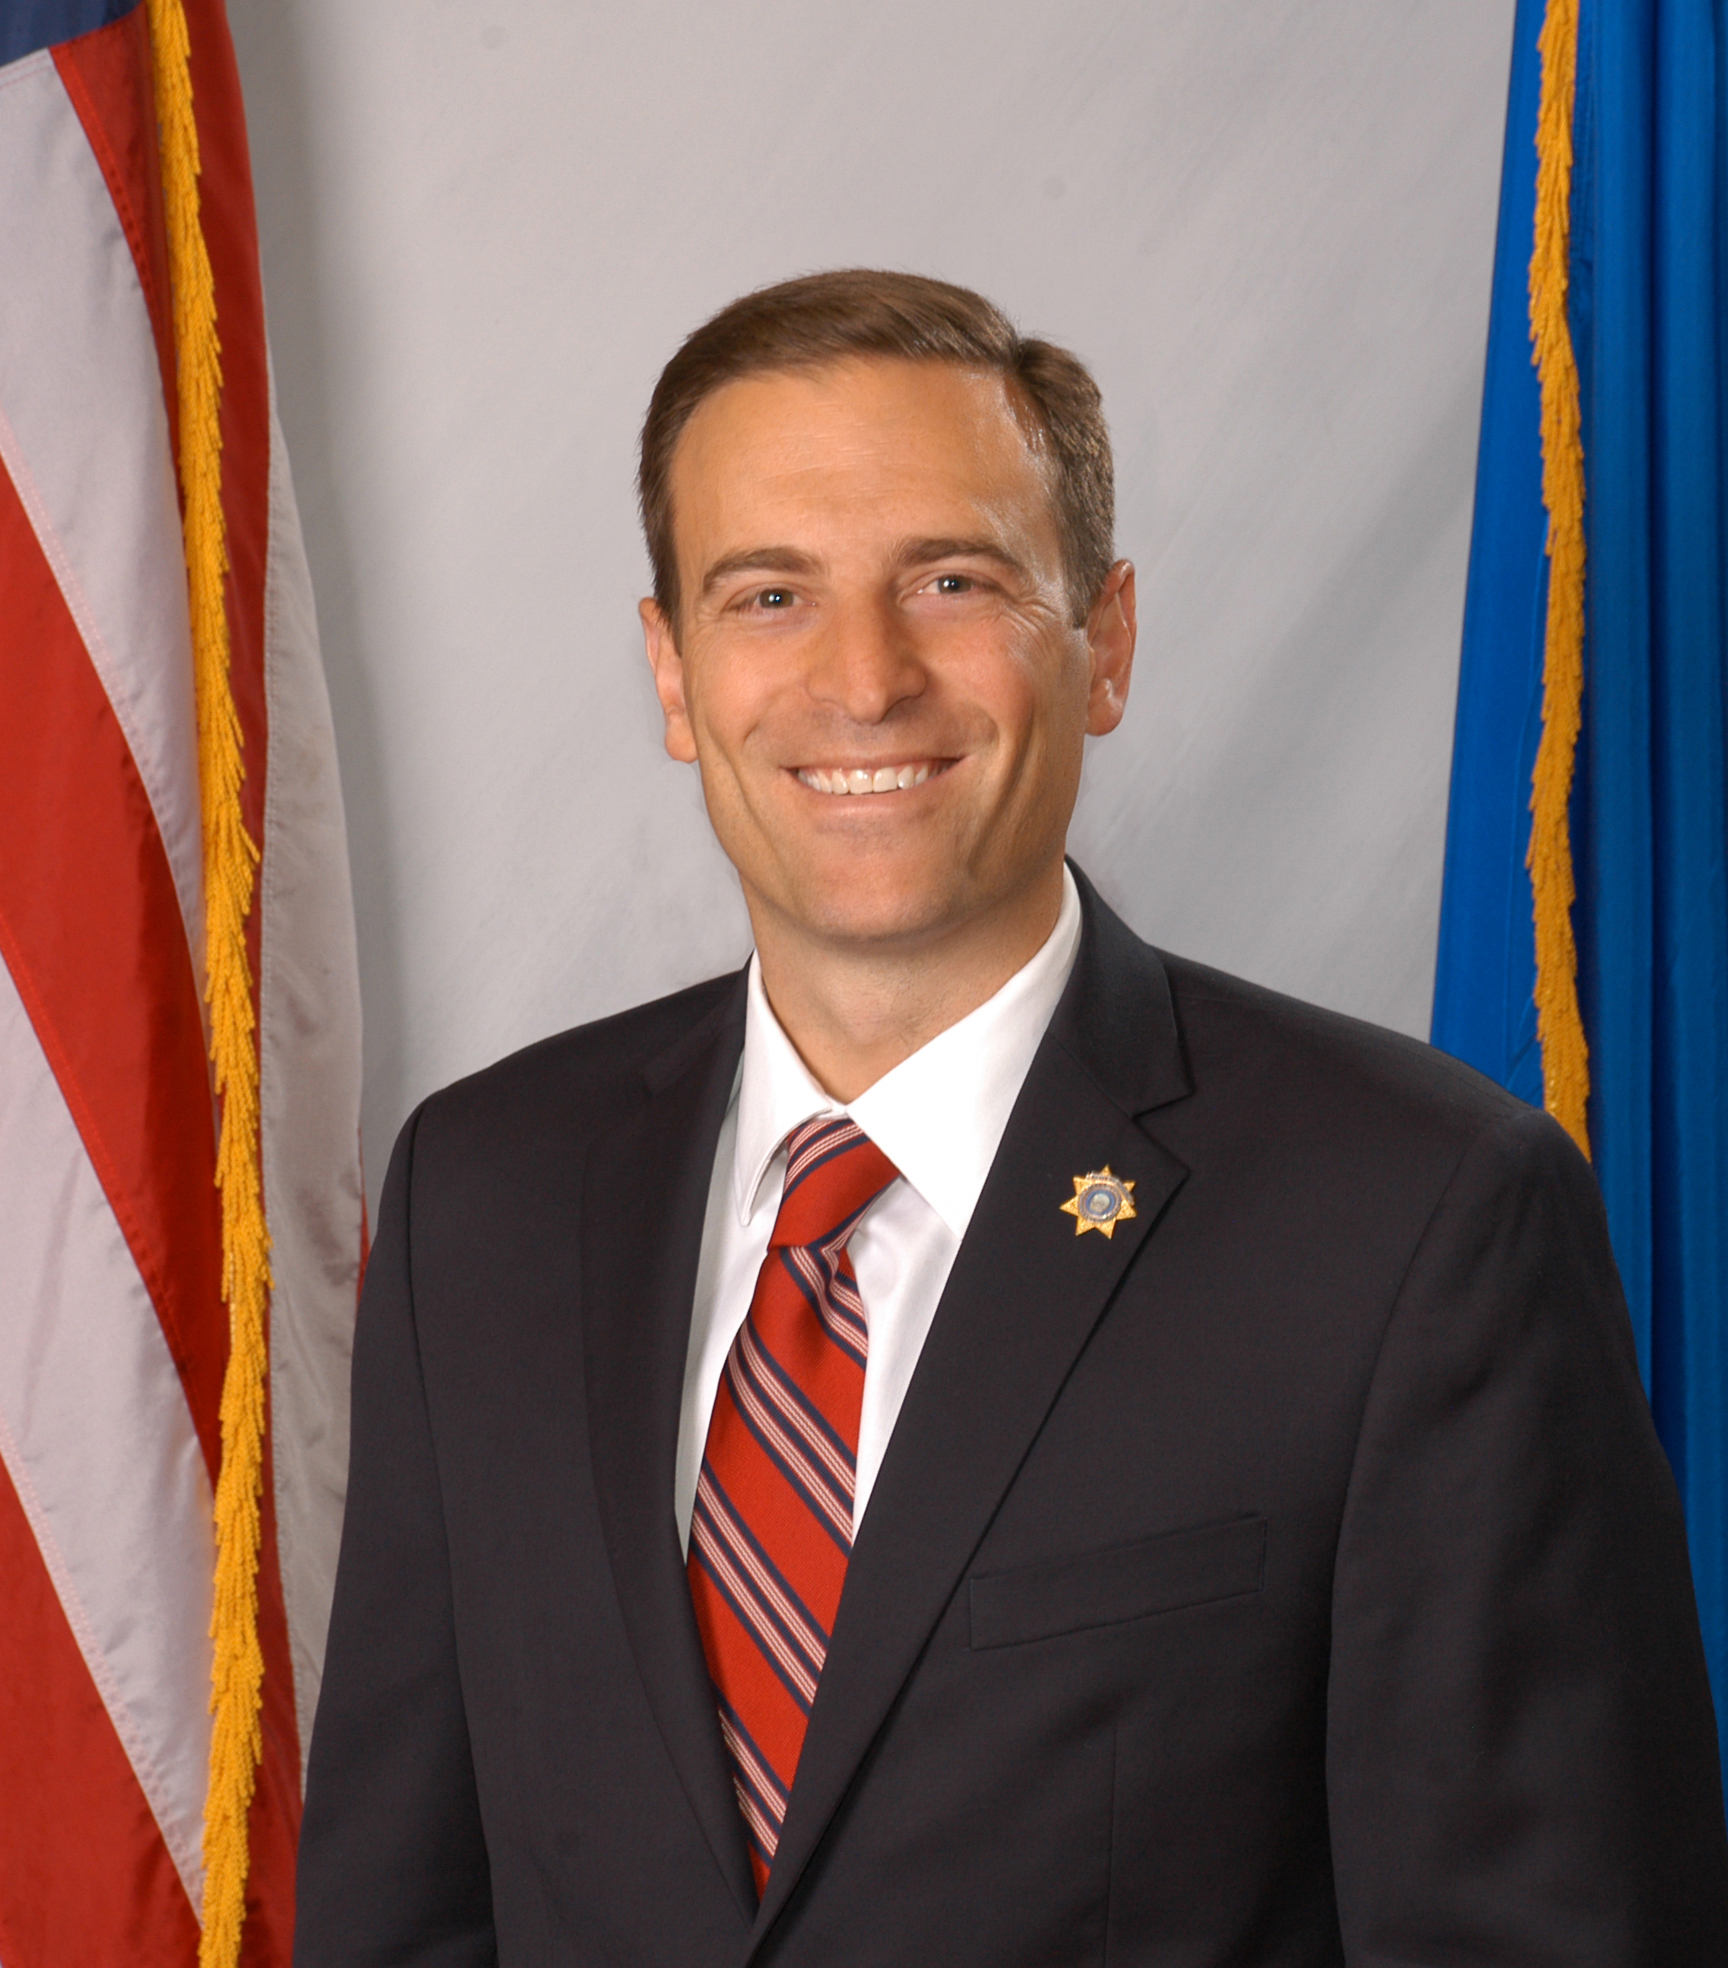 The Colorado Attorney General: Nevada AG Adam Laxalt's Co-Signing RAWA Letter Triggers